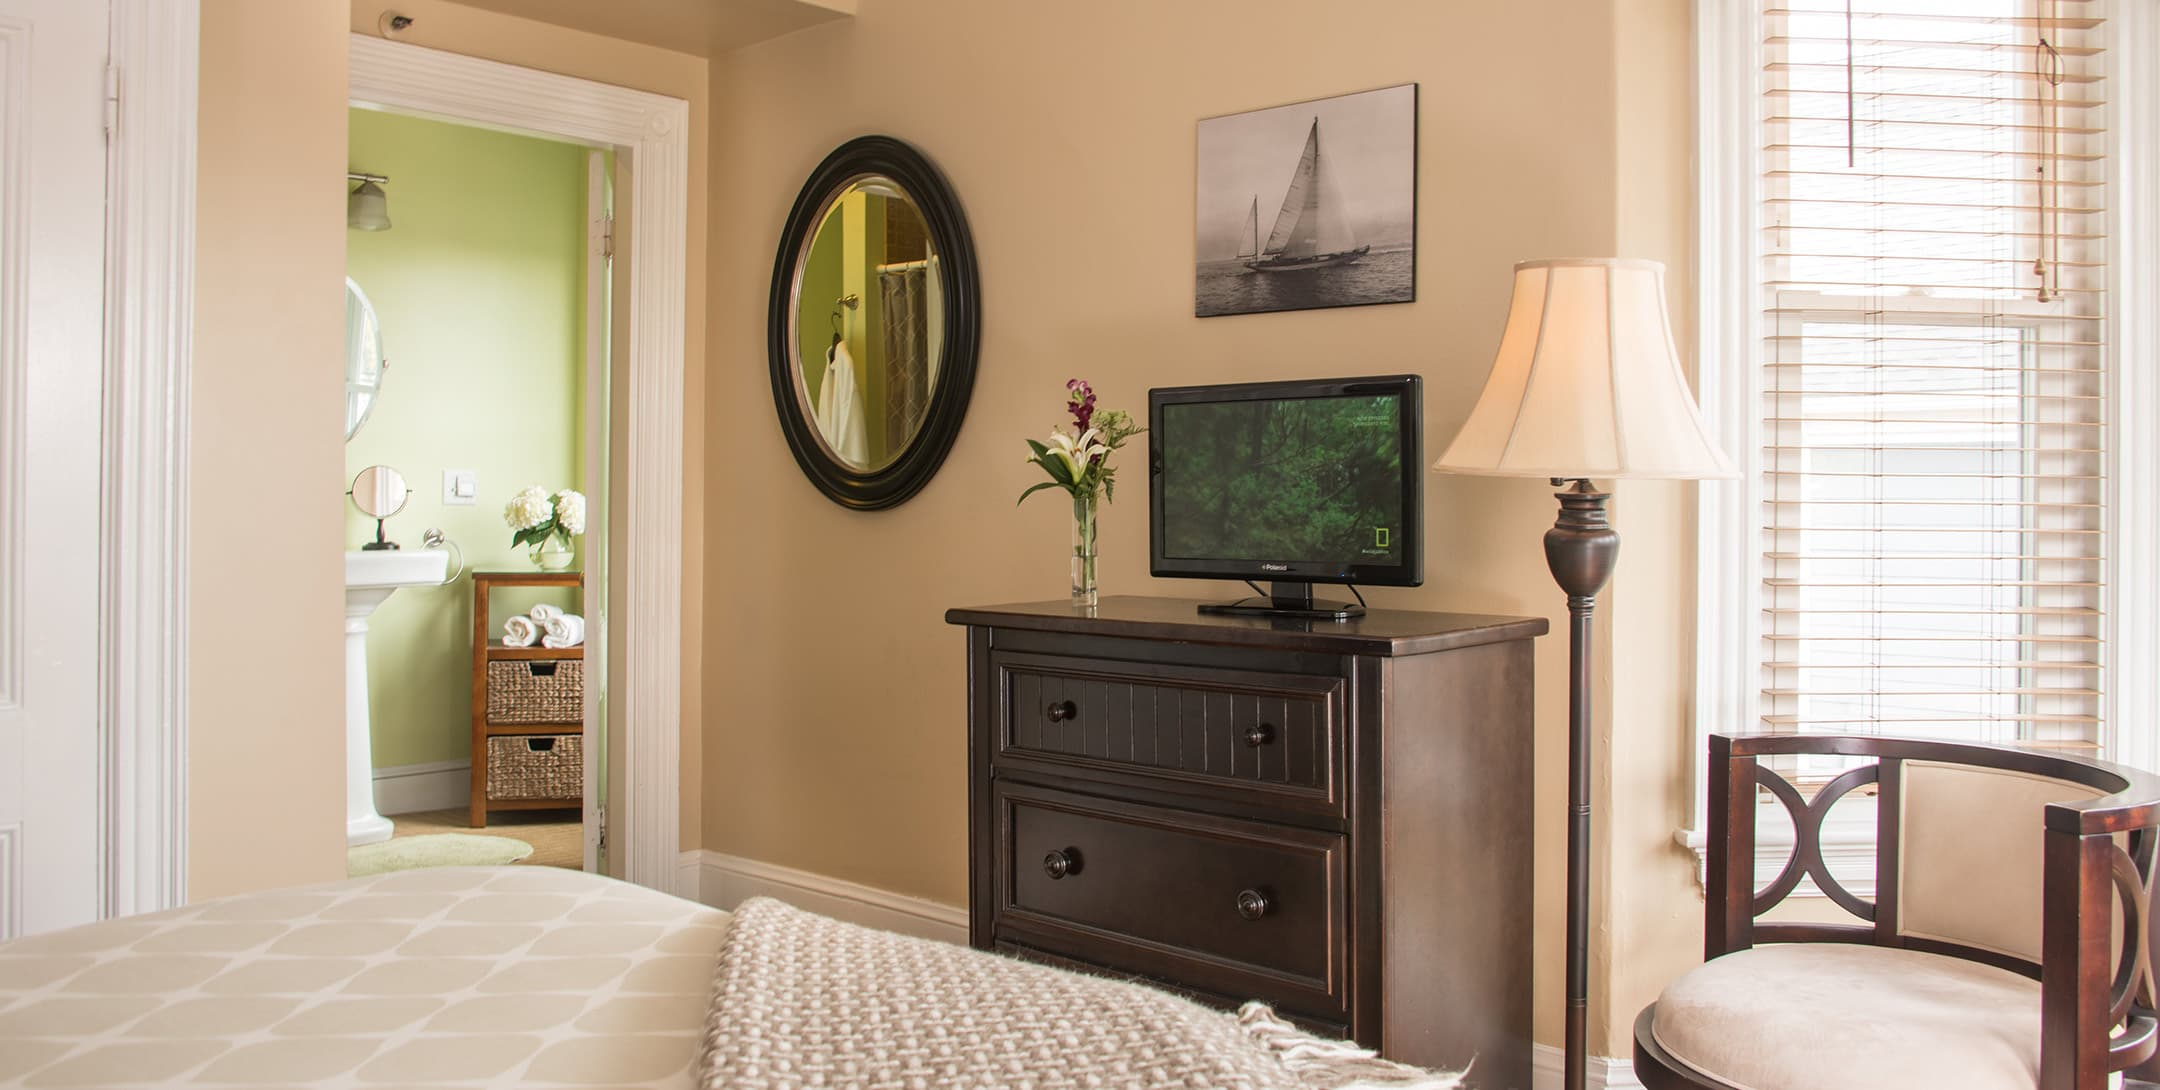 The Longfellow Room dresser with TV on top